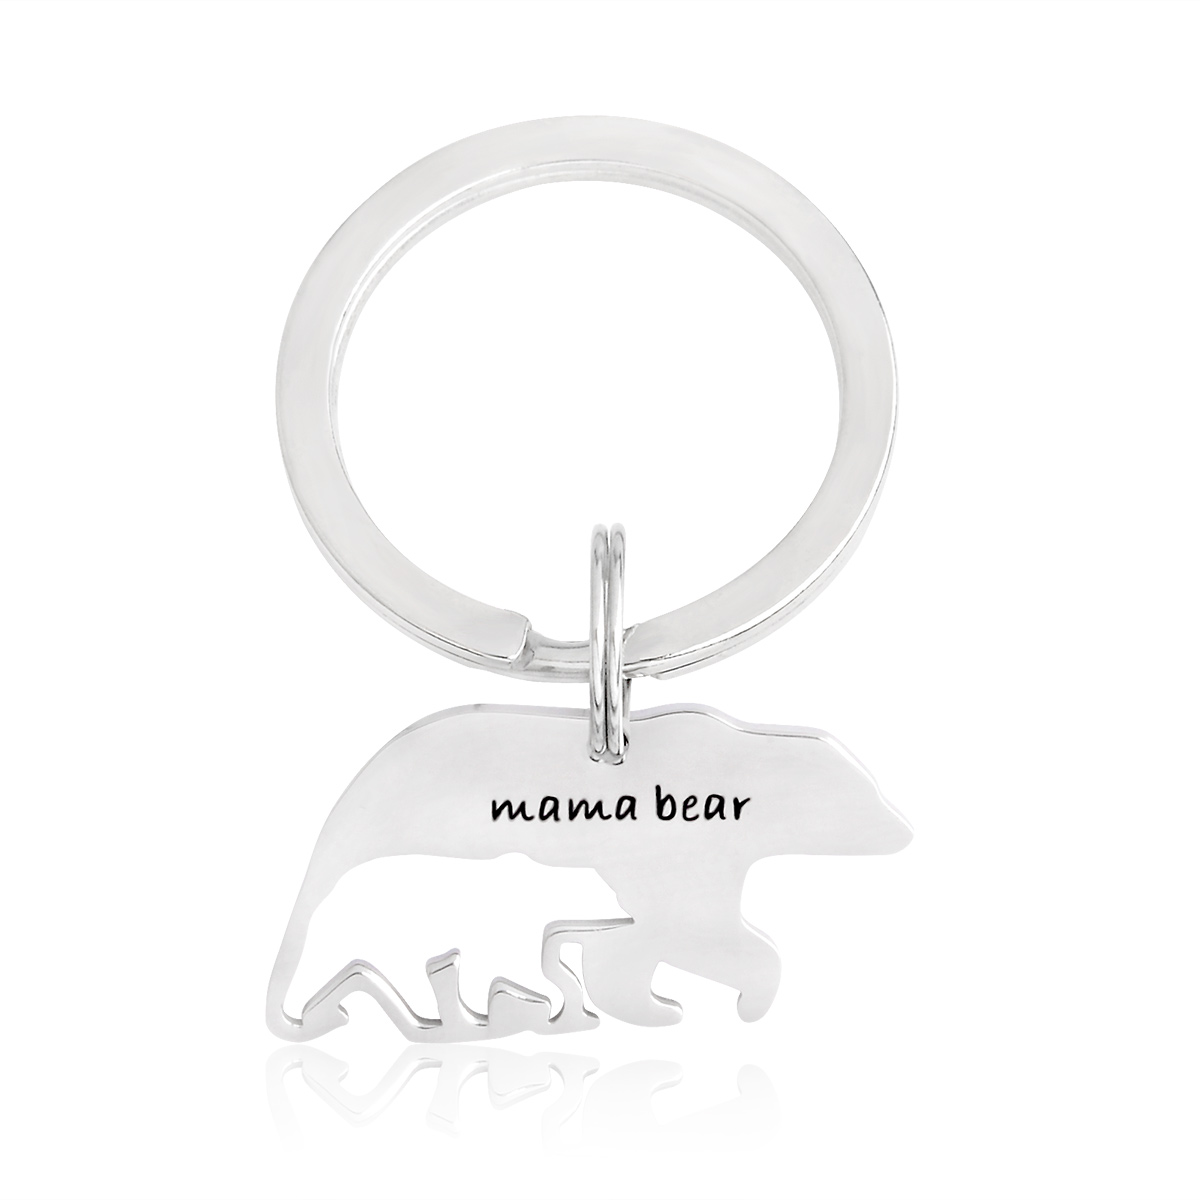 Mama bear with hollow baby bear Keychain Silver Stainless steel Key chains Keyring For Mom Mother Kids Family Animal Jewelry